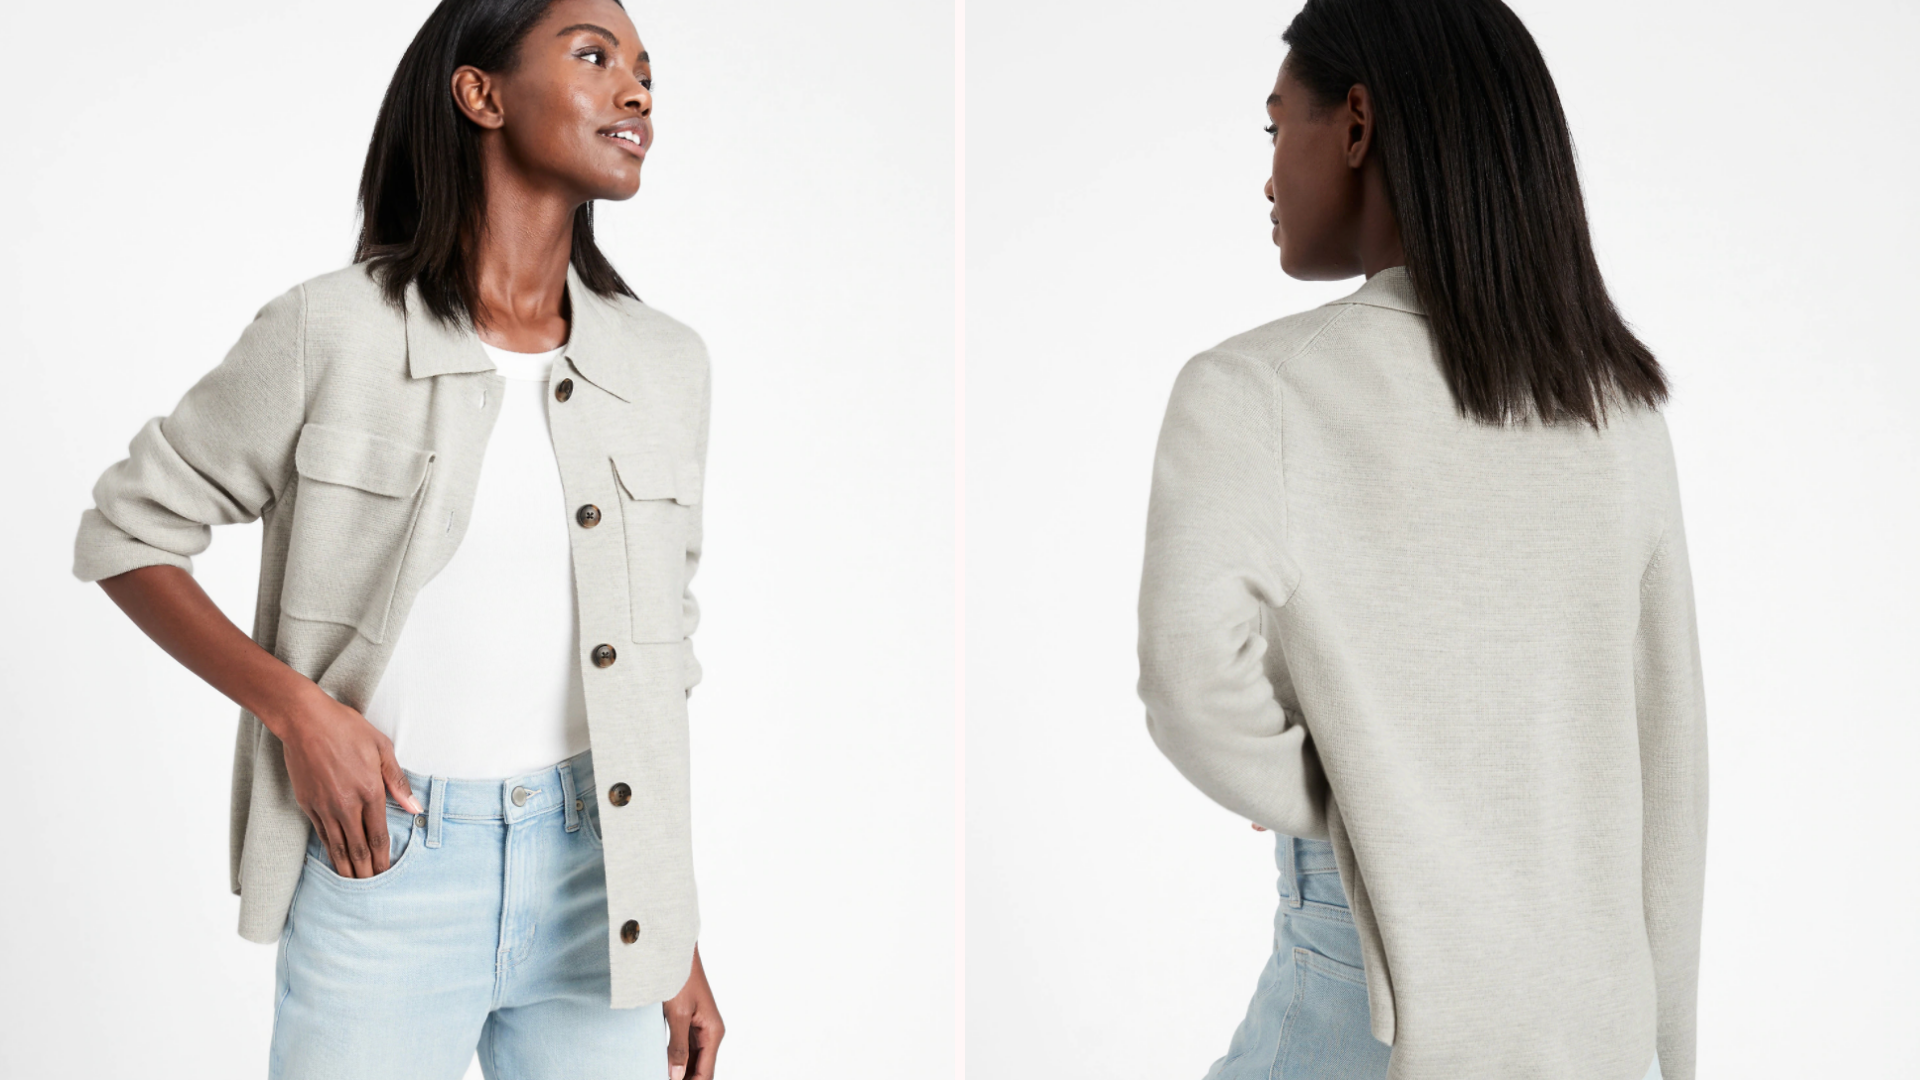 Black woman wearing gray shacket with white shirt and blue jeans